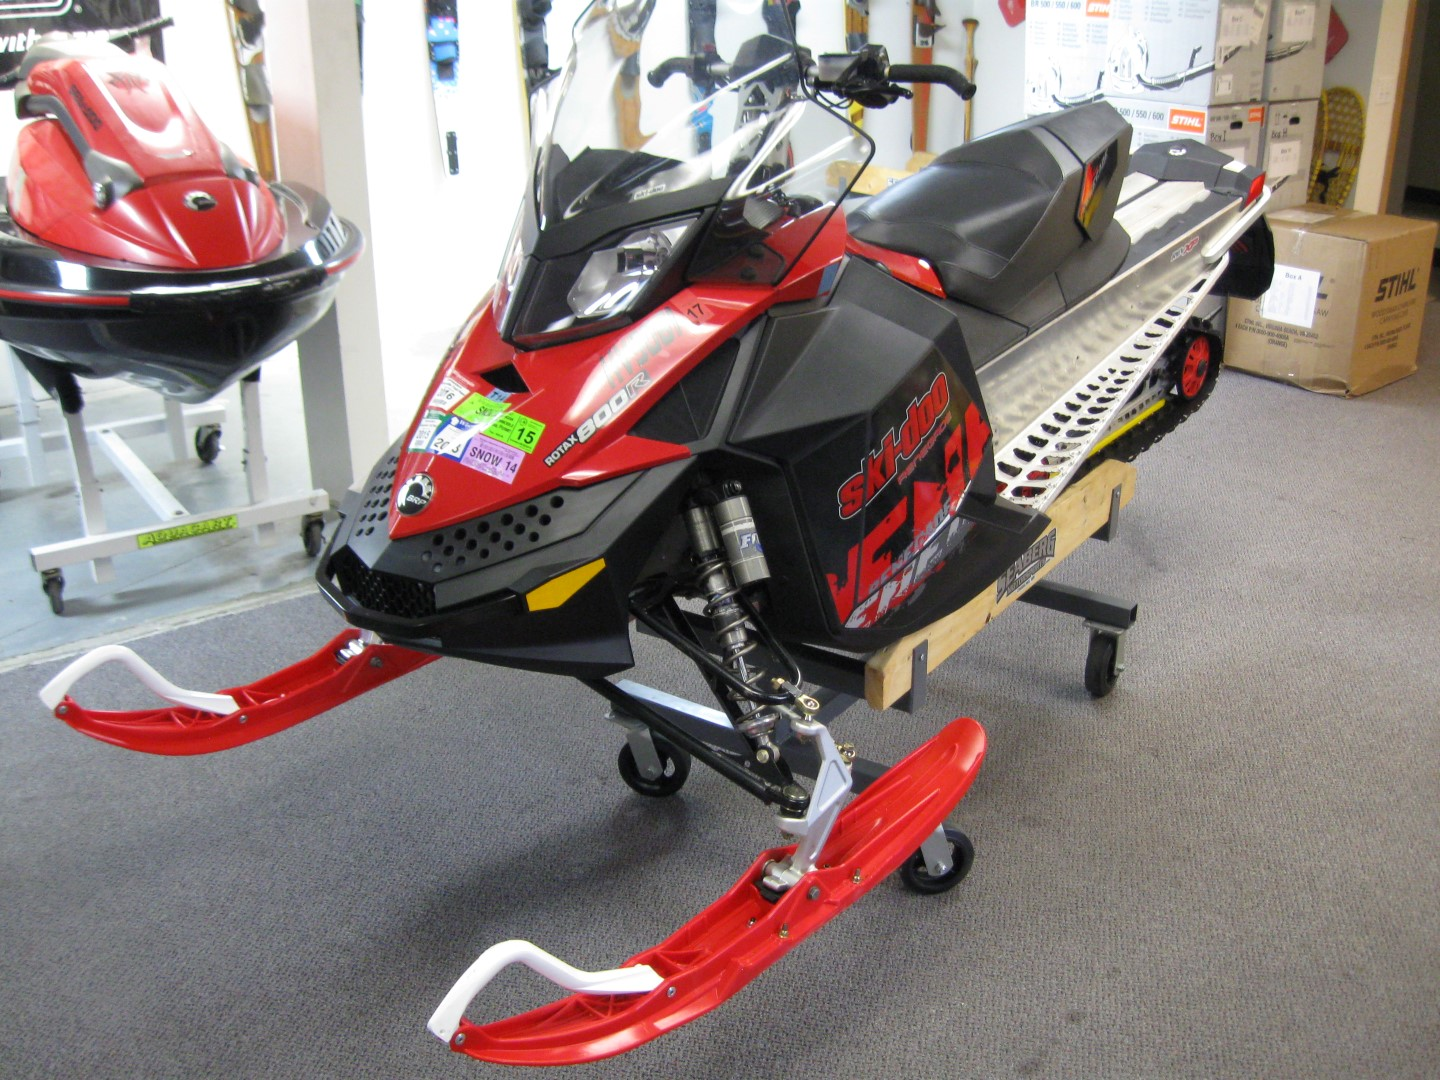 2011 Ski-Doo Renegade 800 XP snowmobile for sale Maple grove MN Seaberg motorsports front right quarter view